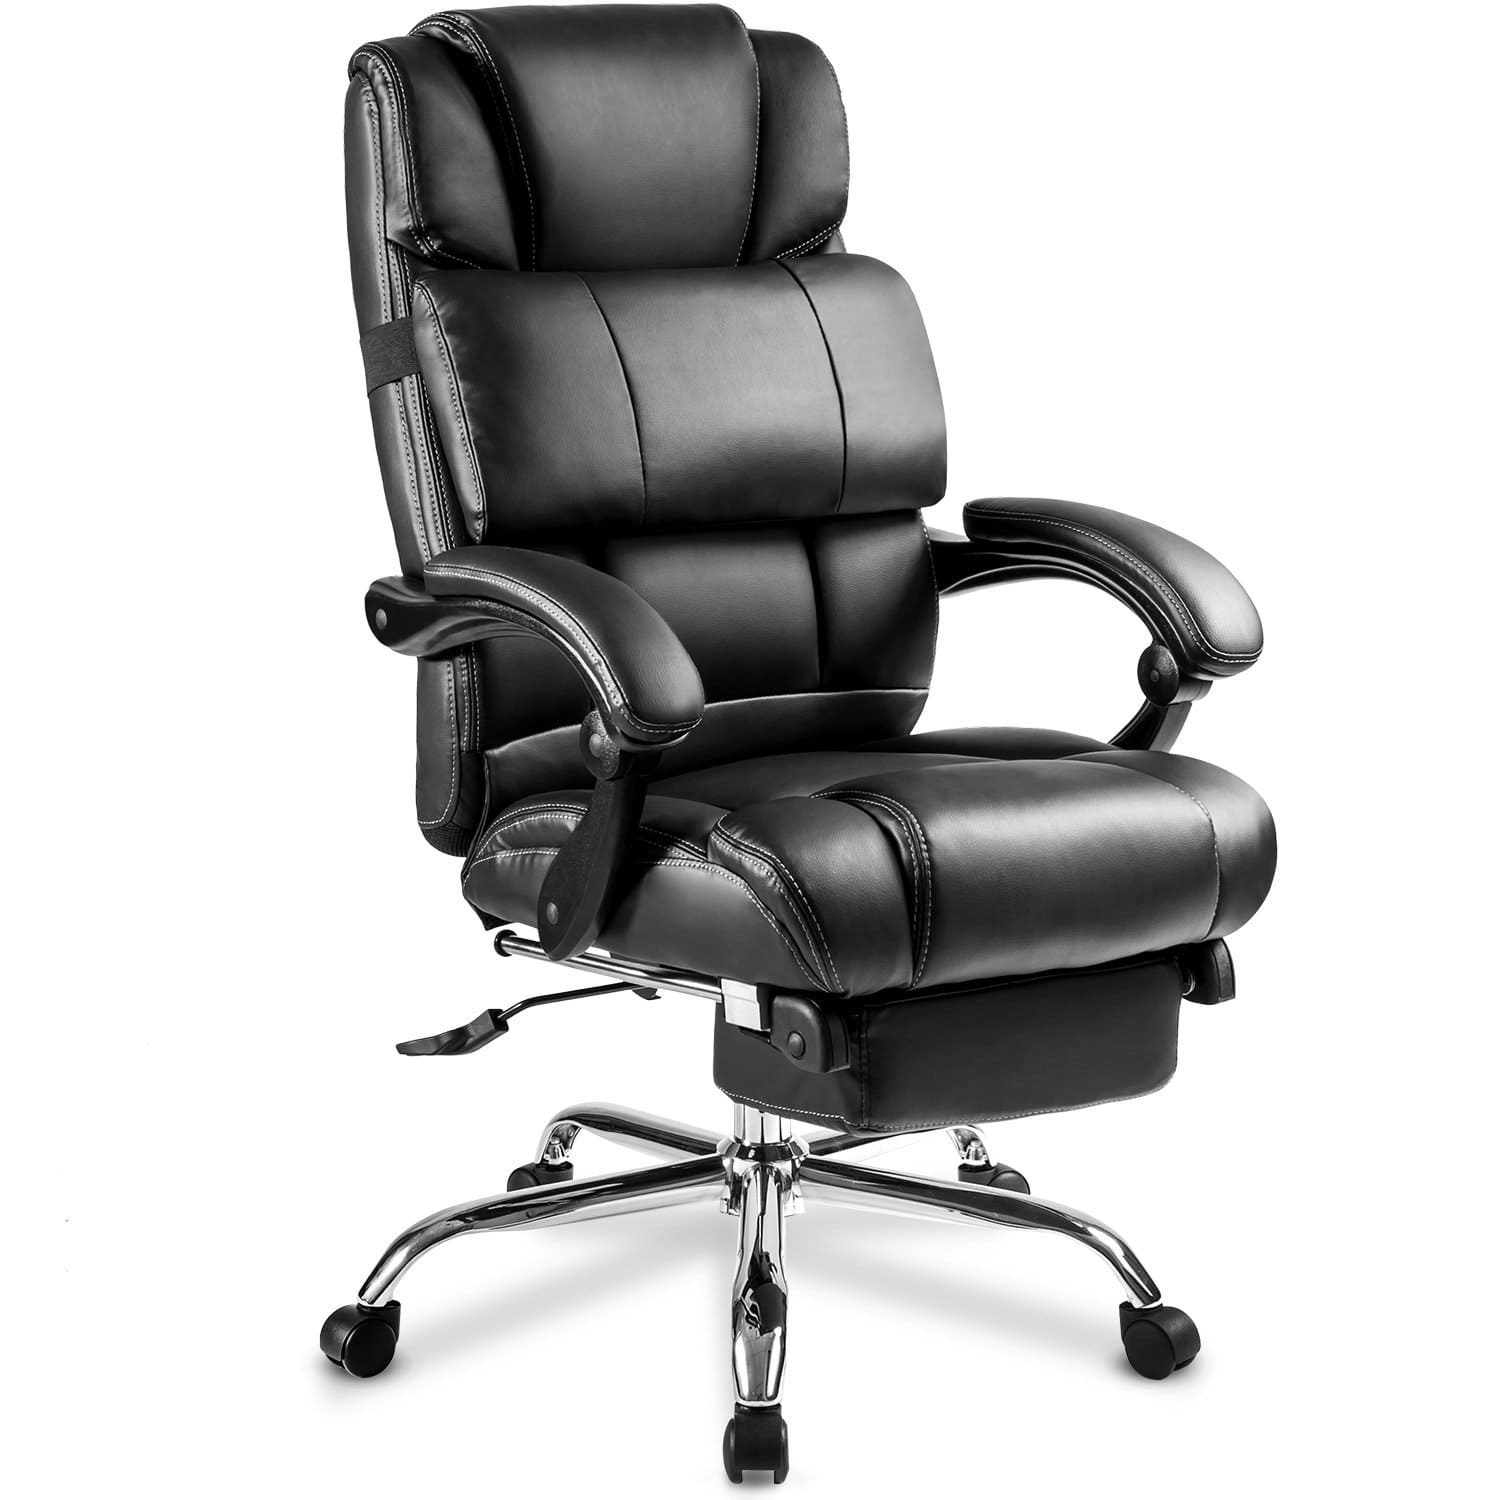 Ergonomic Office Reclining Chair Computer Gamers PC Racer Merax Racing Gaming Chair with Footrest High Back Large Home Desk Chairs Executive Adjustable Armrests and Comfortable Seat Blue